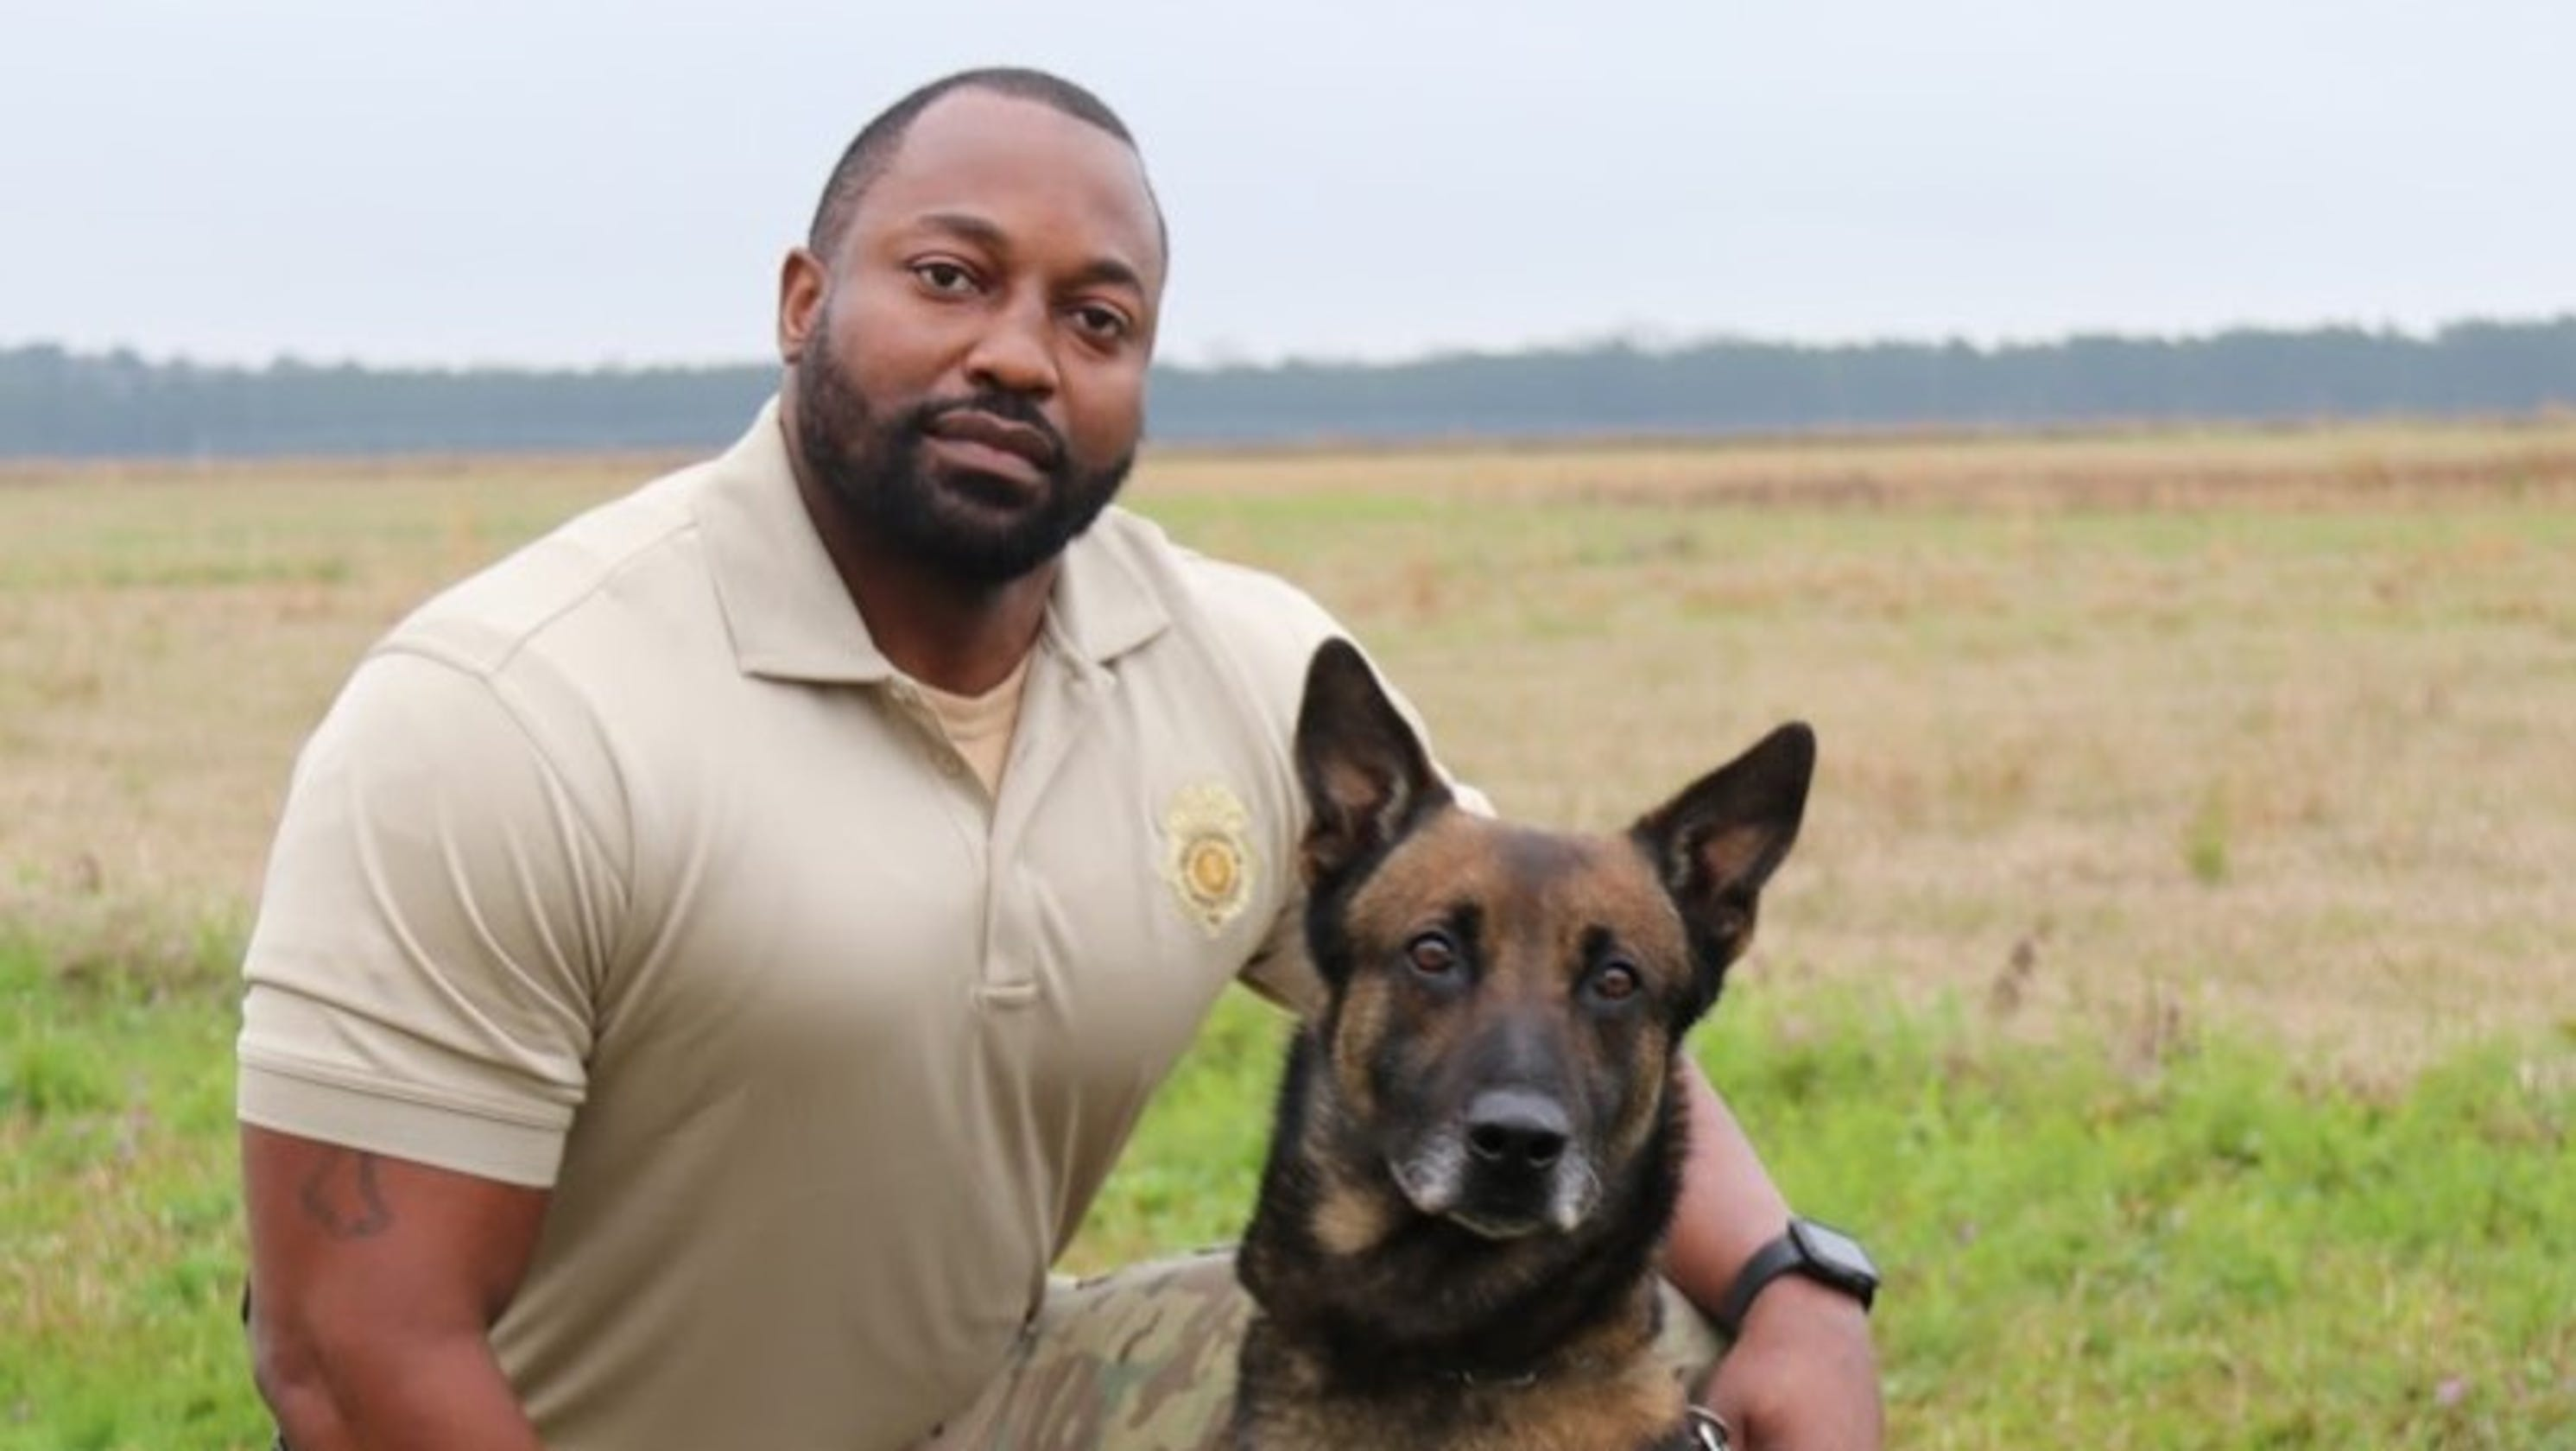 A drug dog had an allergic reaction while sniffing around an Alabama prison and died